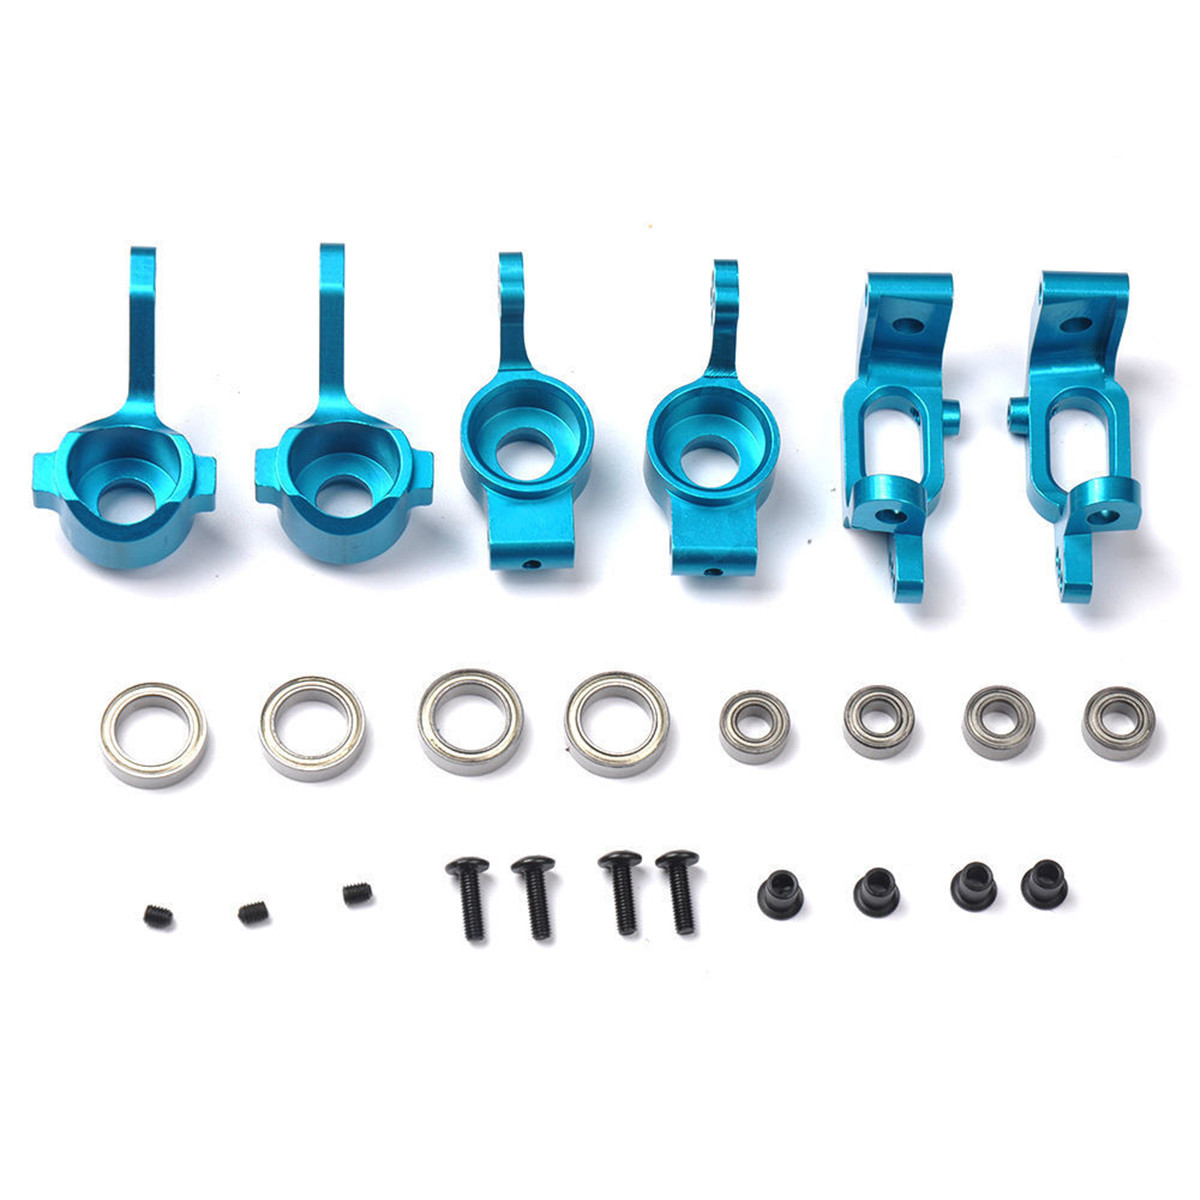 For HSP 1:10 RC Racing Car Upgrade Parts Alloy Front Rear Hub Carrier Steering